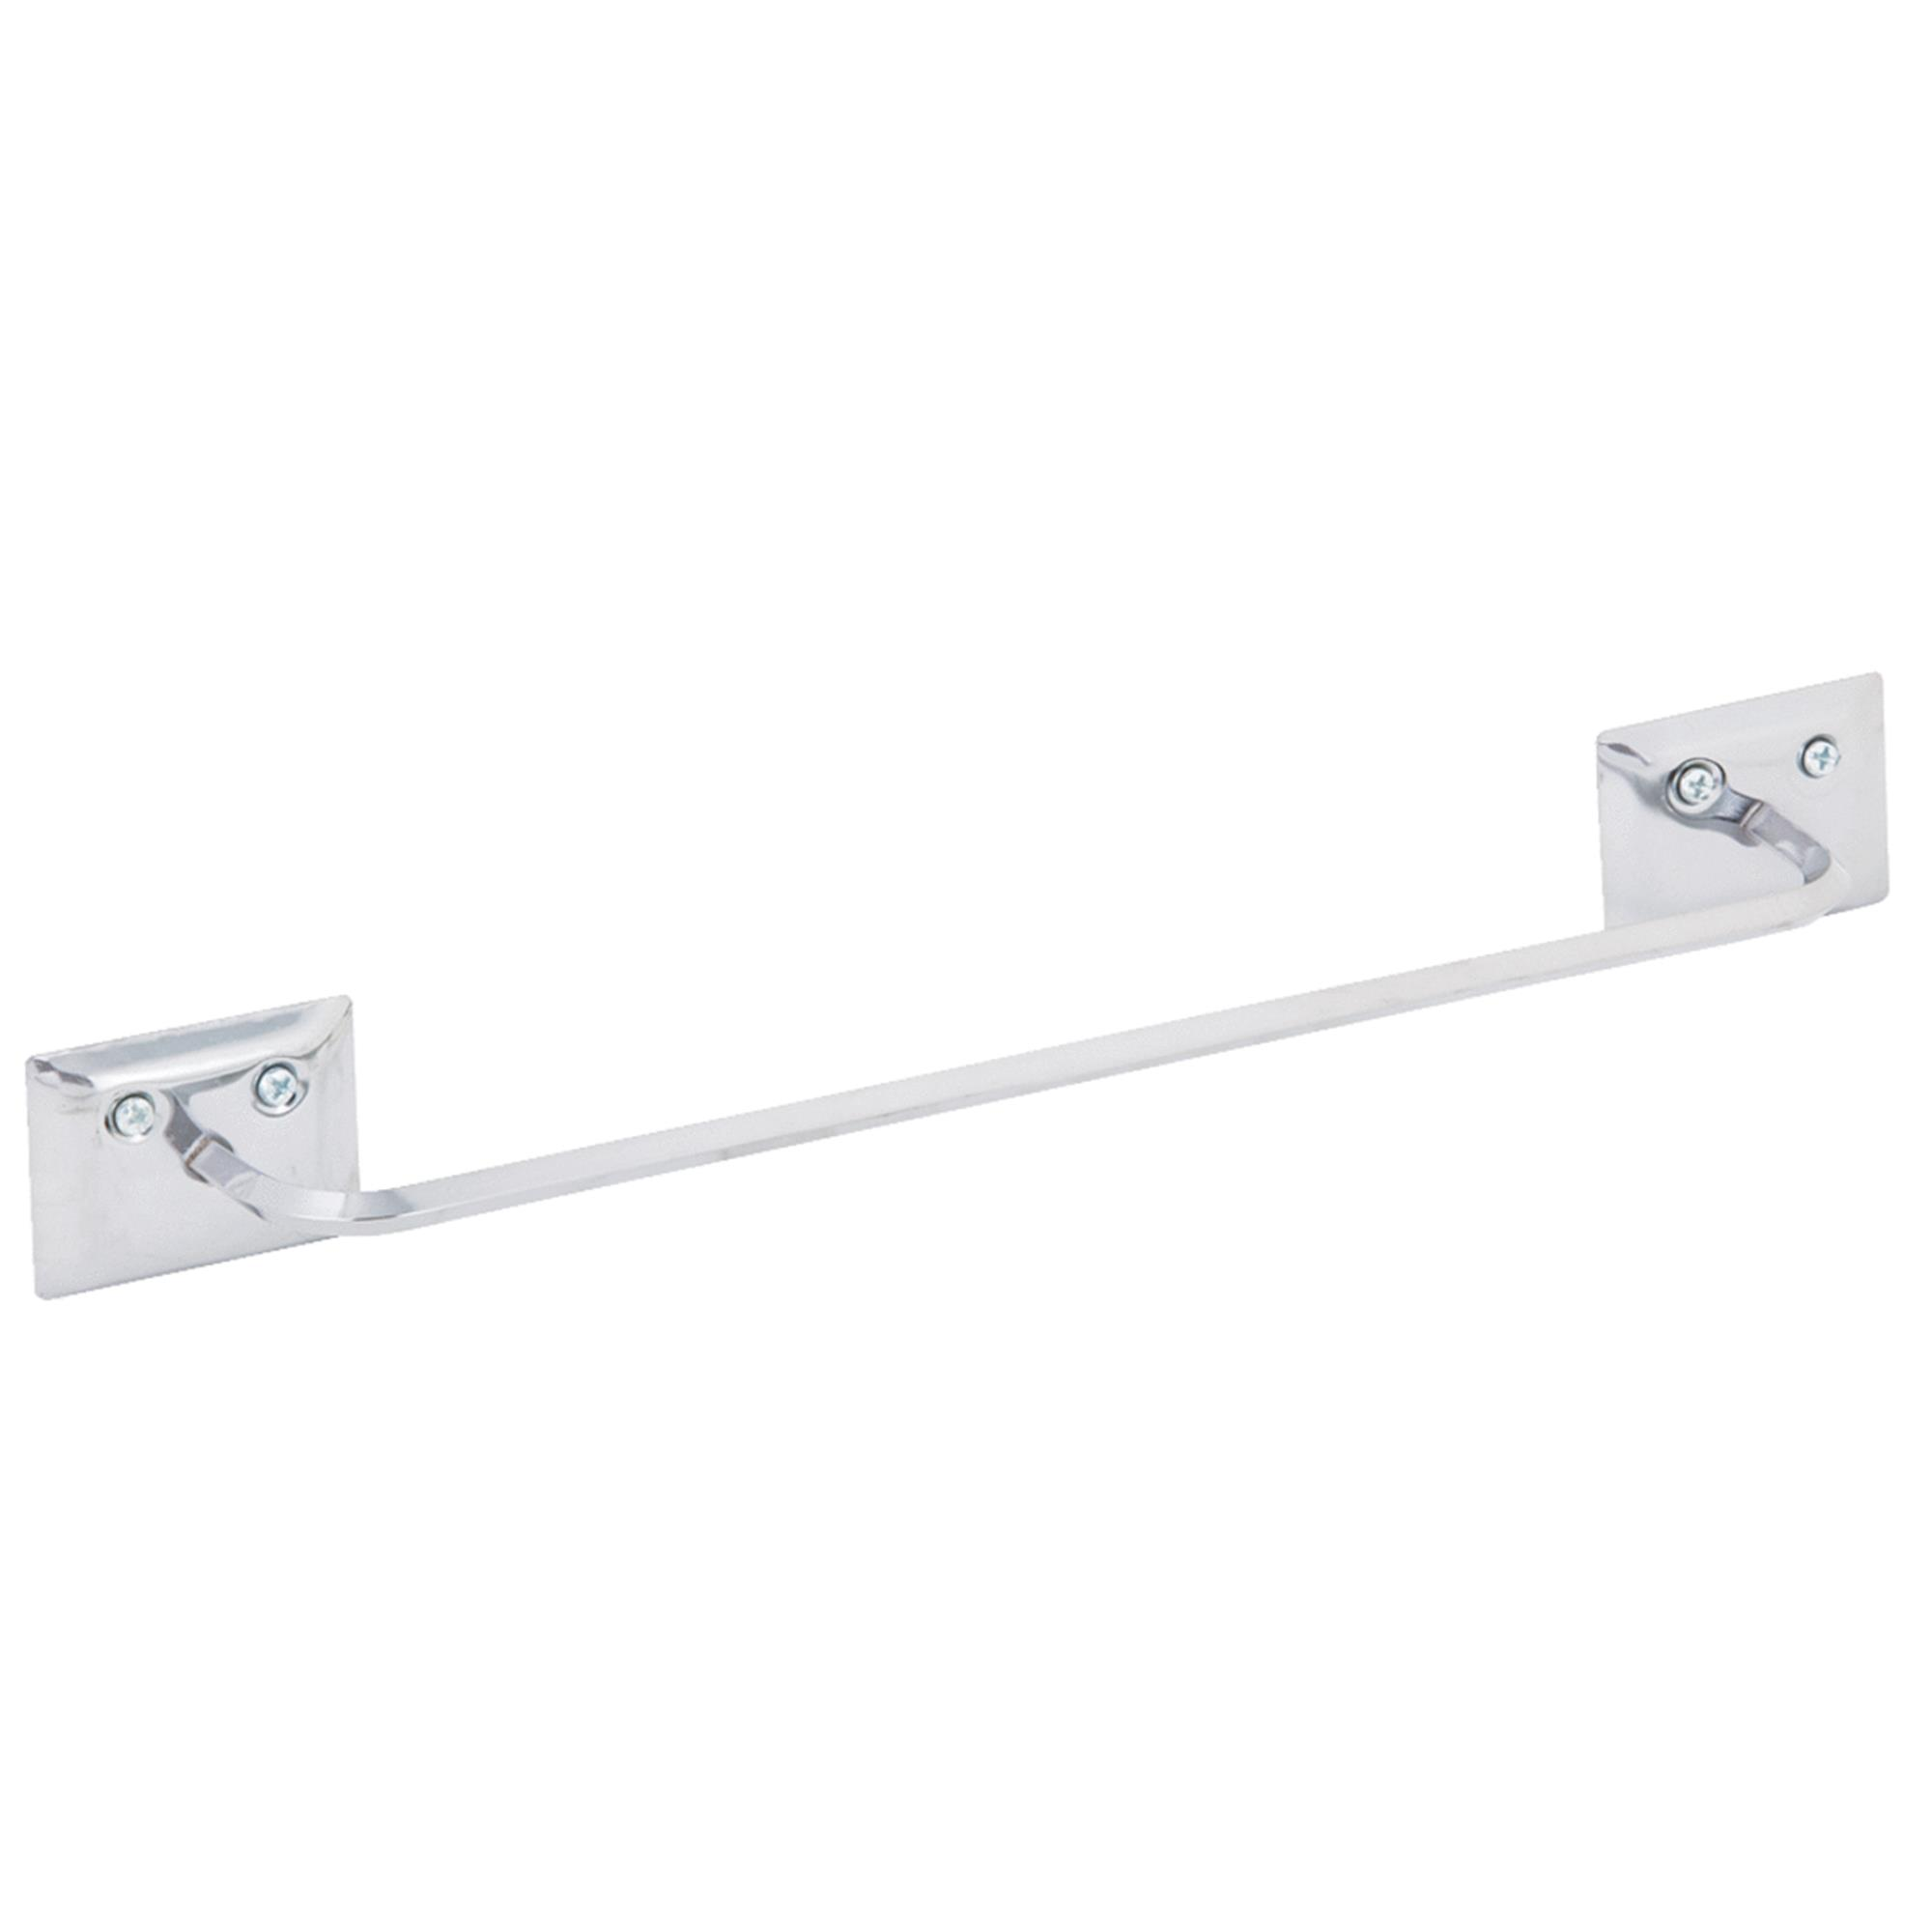 "Decko 38120 12"" Chrome Towel Bars"